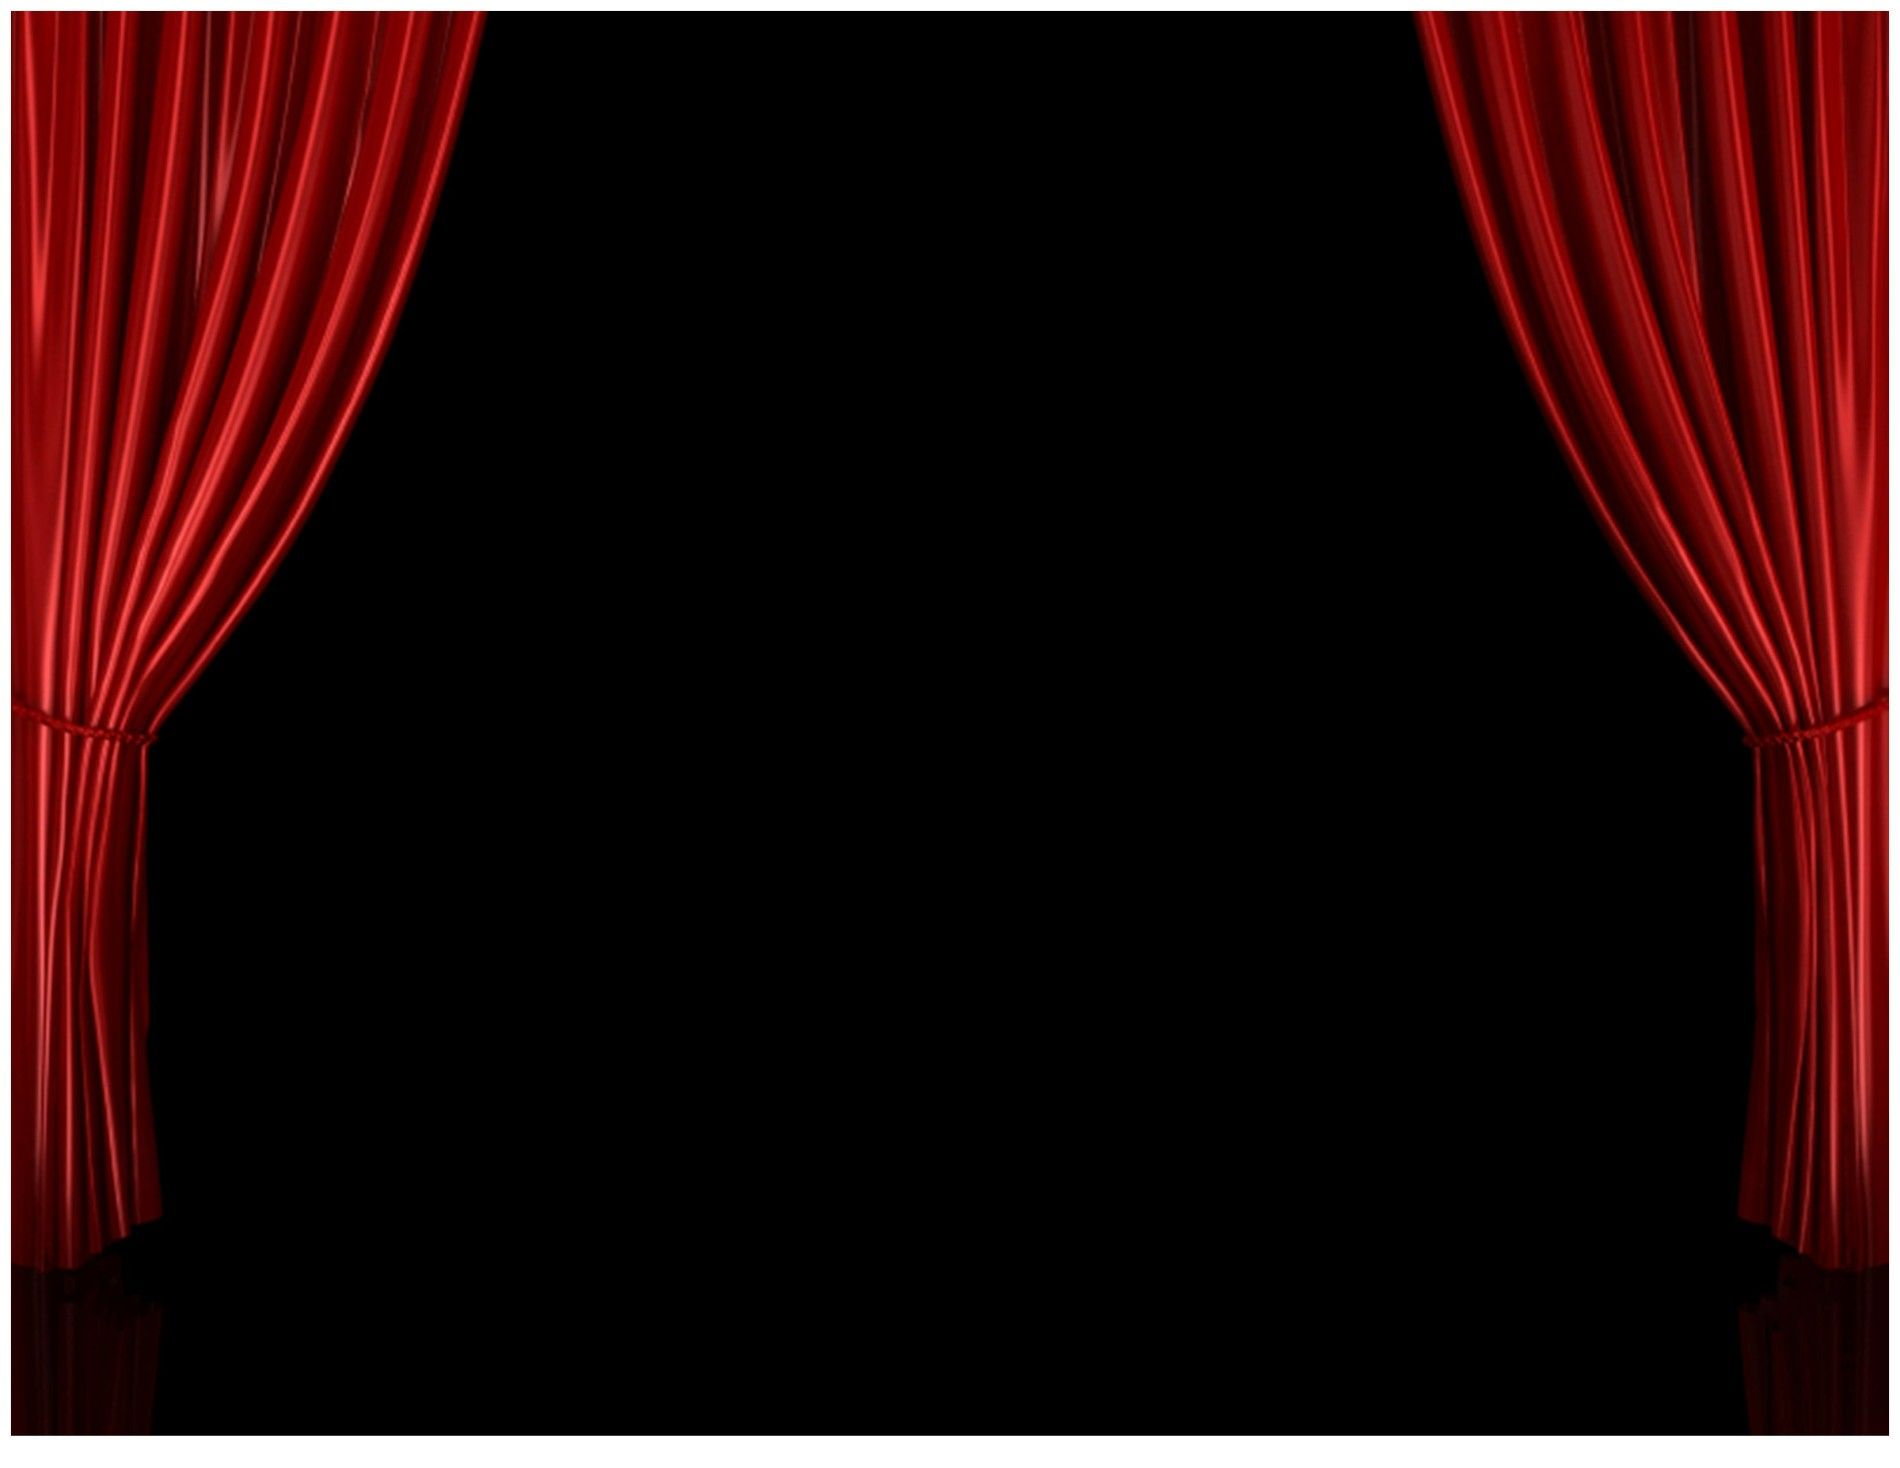 Theatre Stage Curtains Google Search